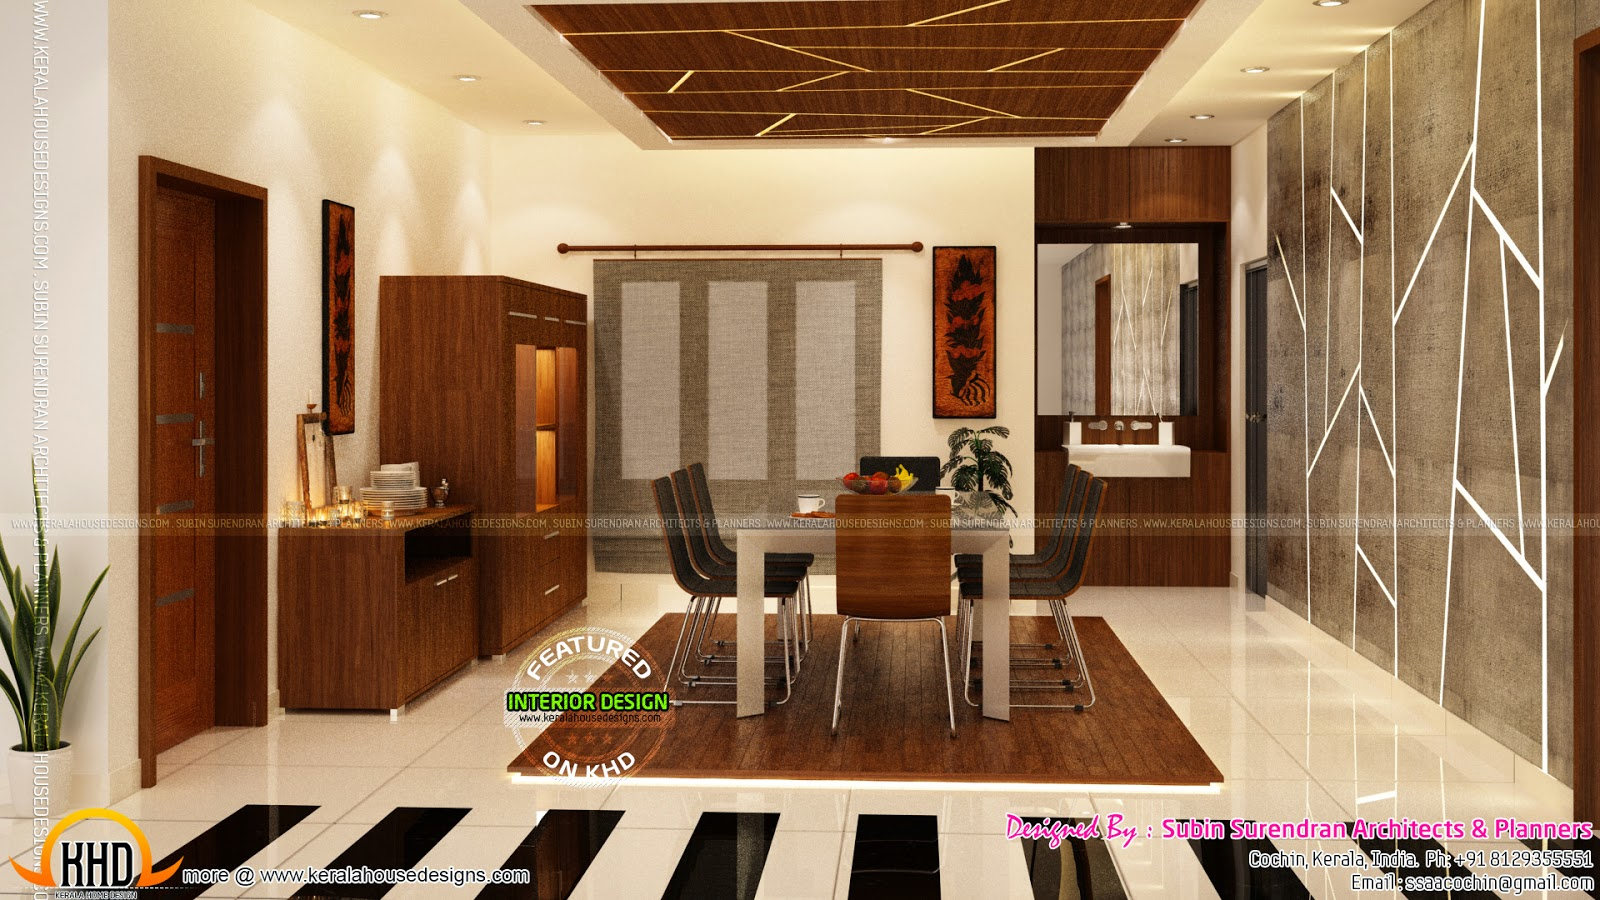 News and article online for Kerala house interior arch design